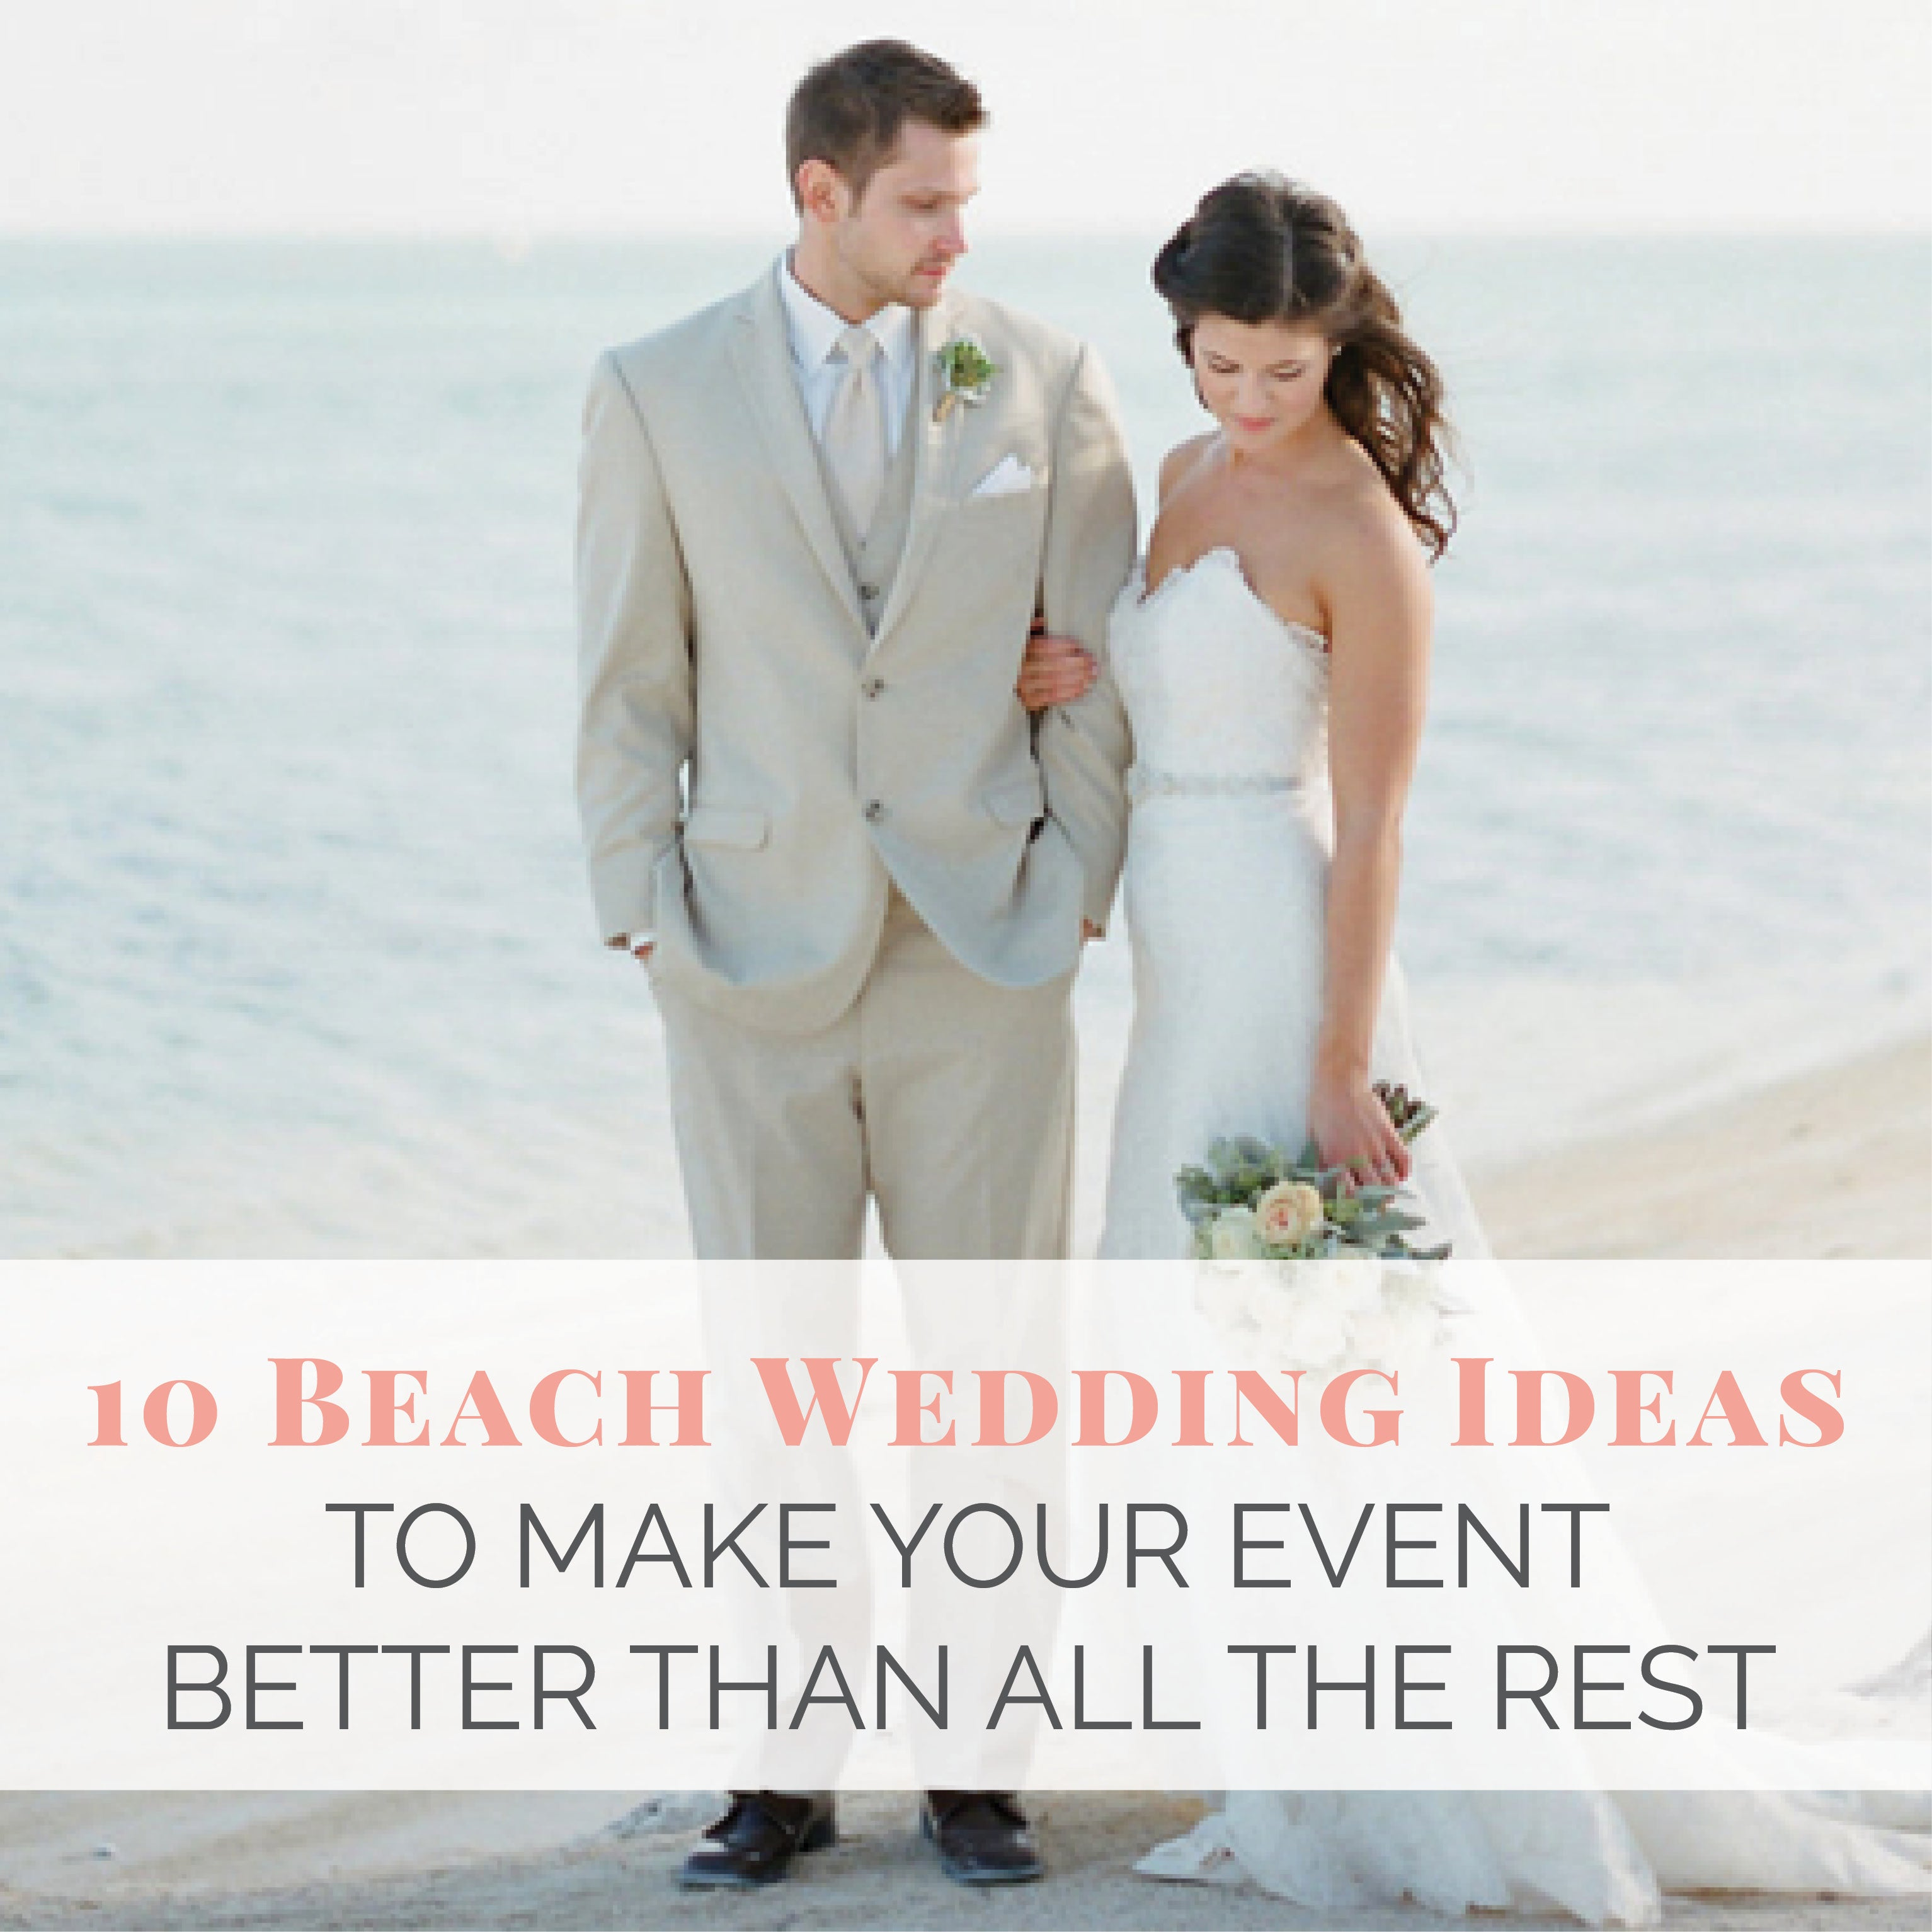 10 Beach Wedding Ideas to Make Your Event Better Than All the Rest – Wedding  Shoppe